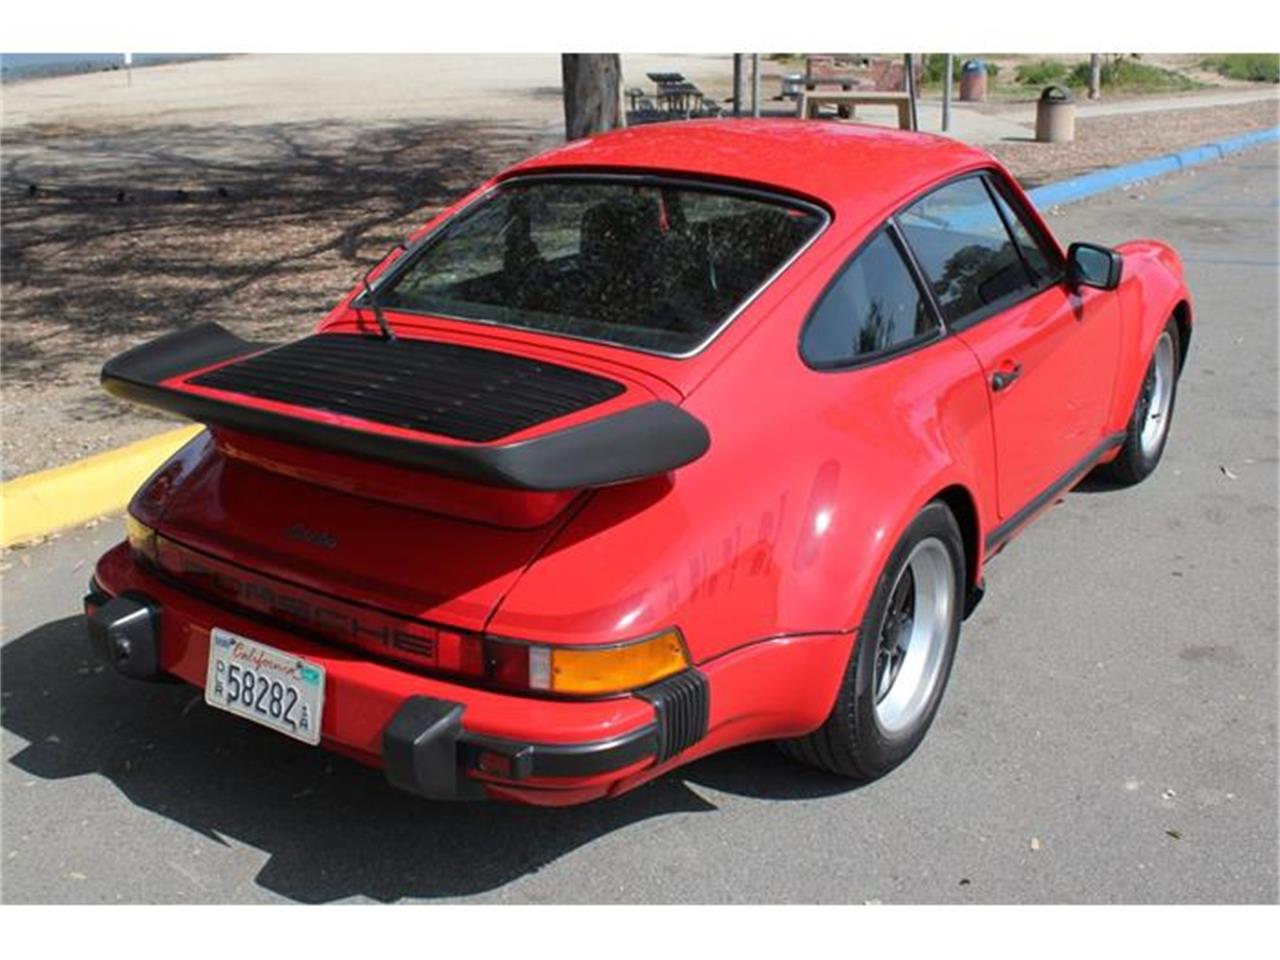 Large Picture of 1979 Porsche 930 Turbo located in San Diego California Offered by Precious Metals - GOQB